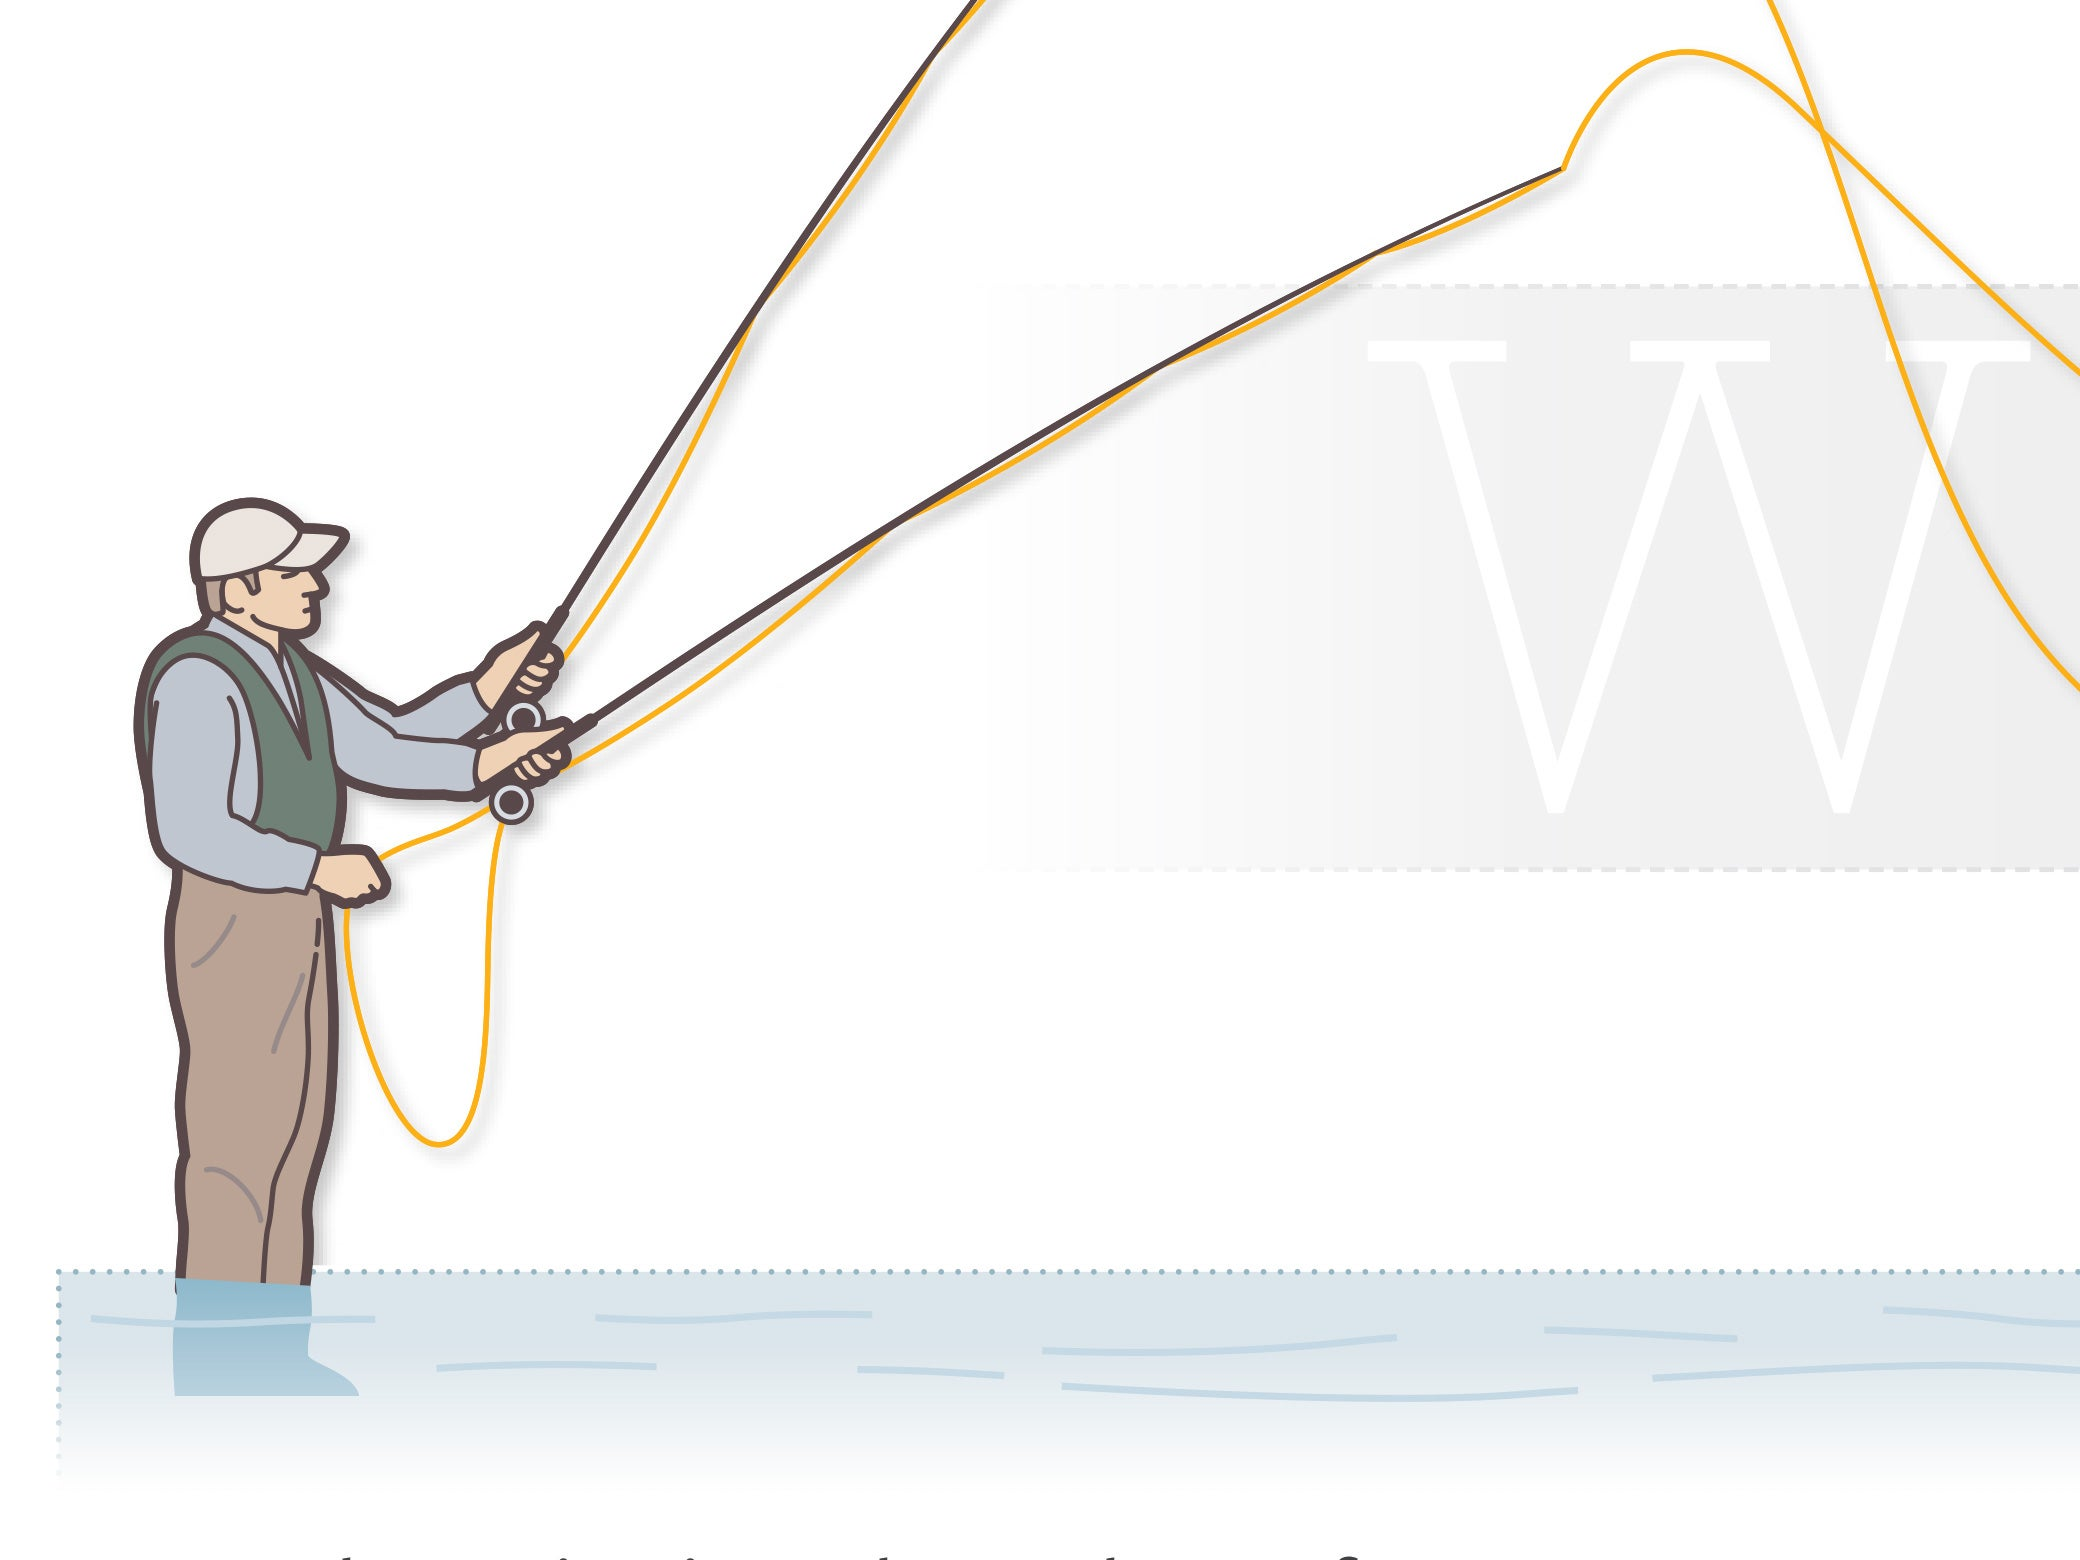 Flyfishing: Three Tips for Casting Into the Wind